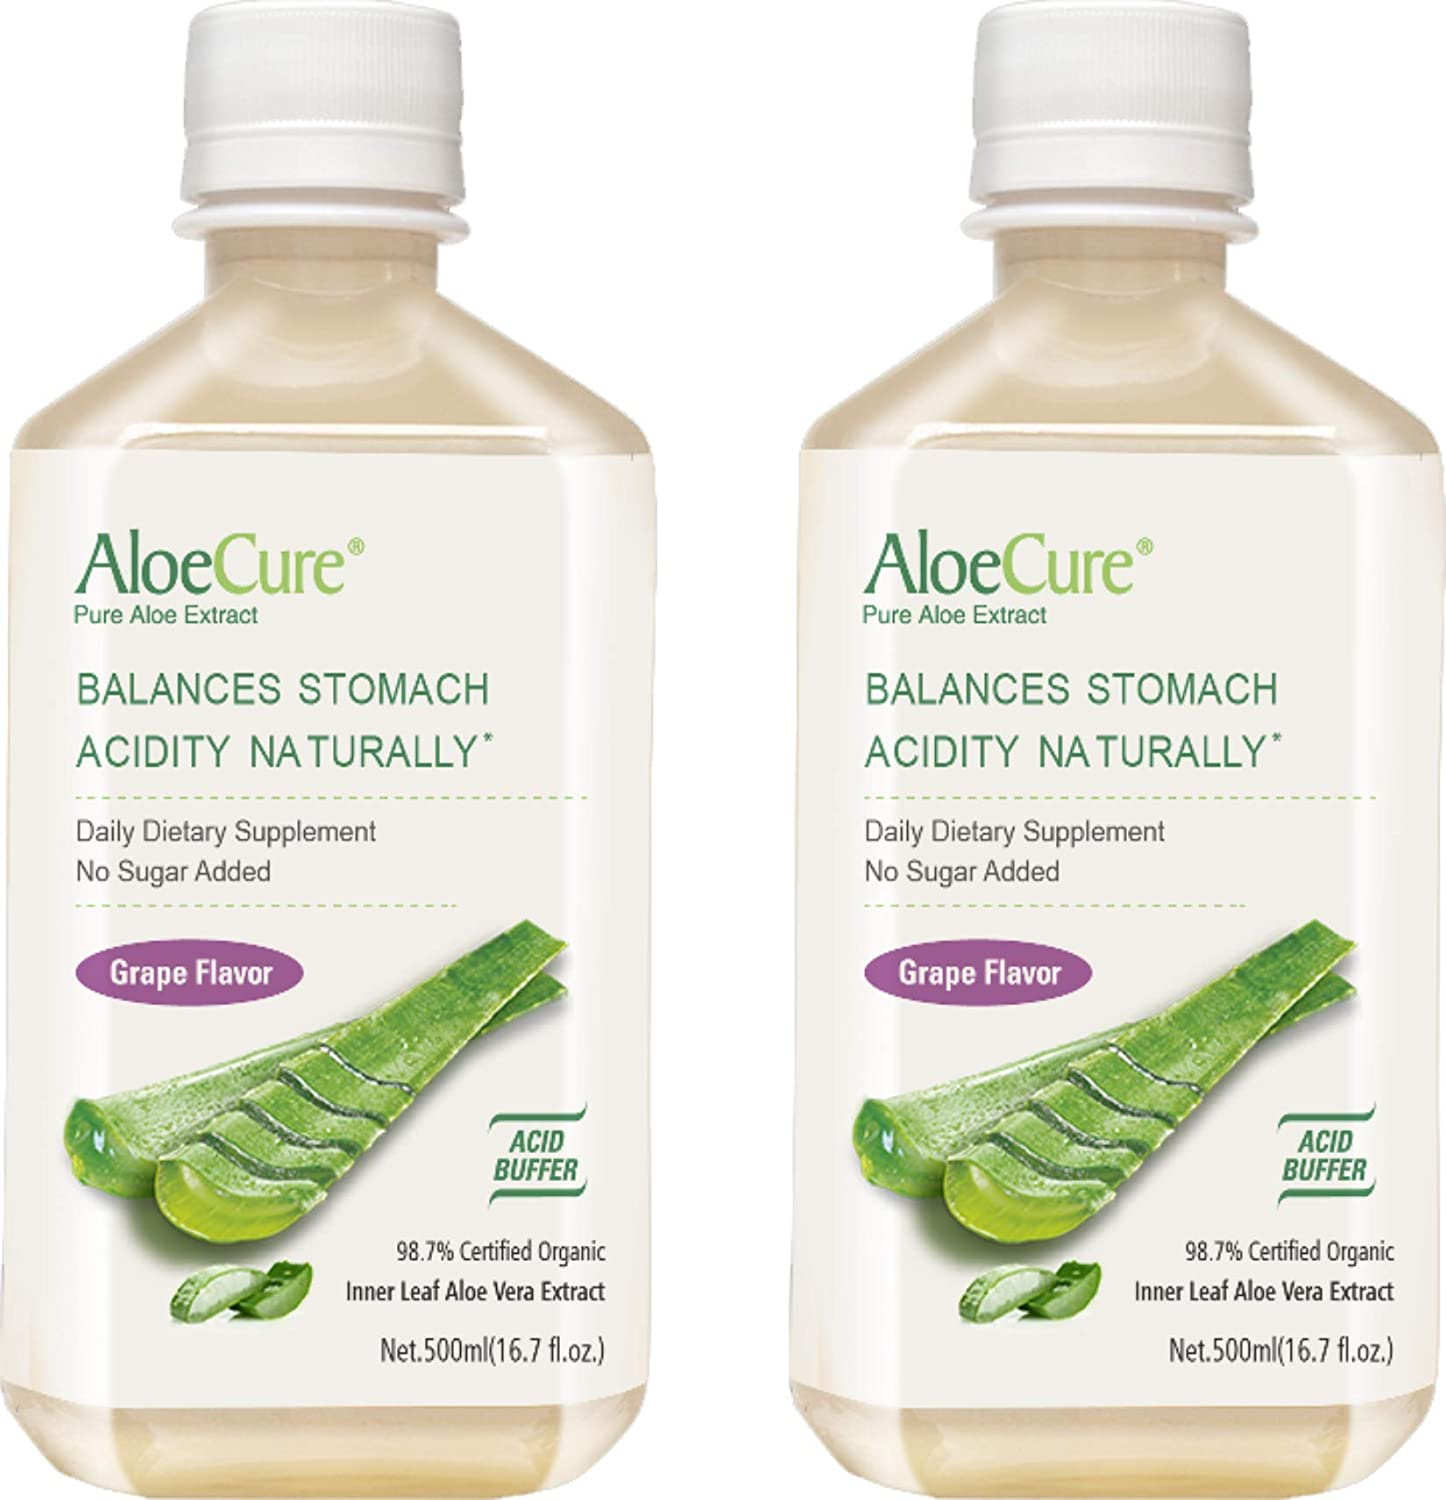 AloeCure Pure Aloe Vera Juice Grape Flavor 2x500ml Bottles, Acid Buffer, Certified Organic Aloe Processed Within 12 Hours of Harvest to Maximize Nutrients, No Charcoal Filtering-Inner Leaf